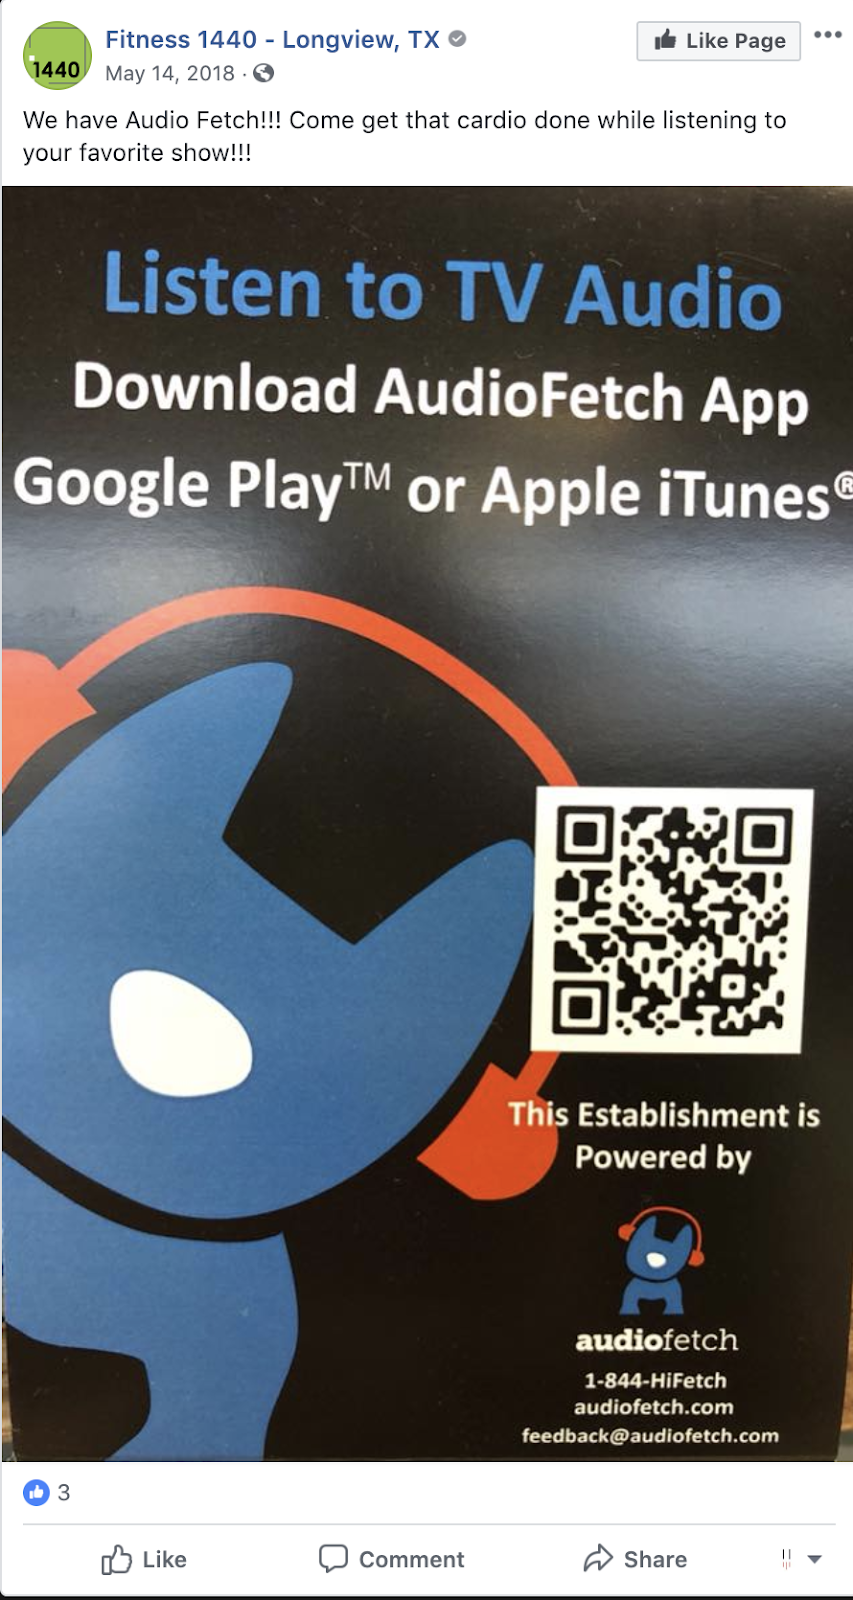 Fitness 1440 in Longview, TX alerts their customers to availability of AudioFetch at their gym.